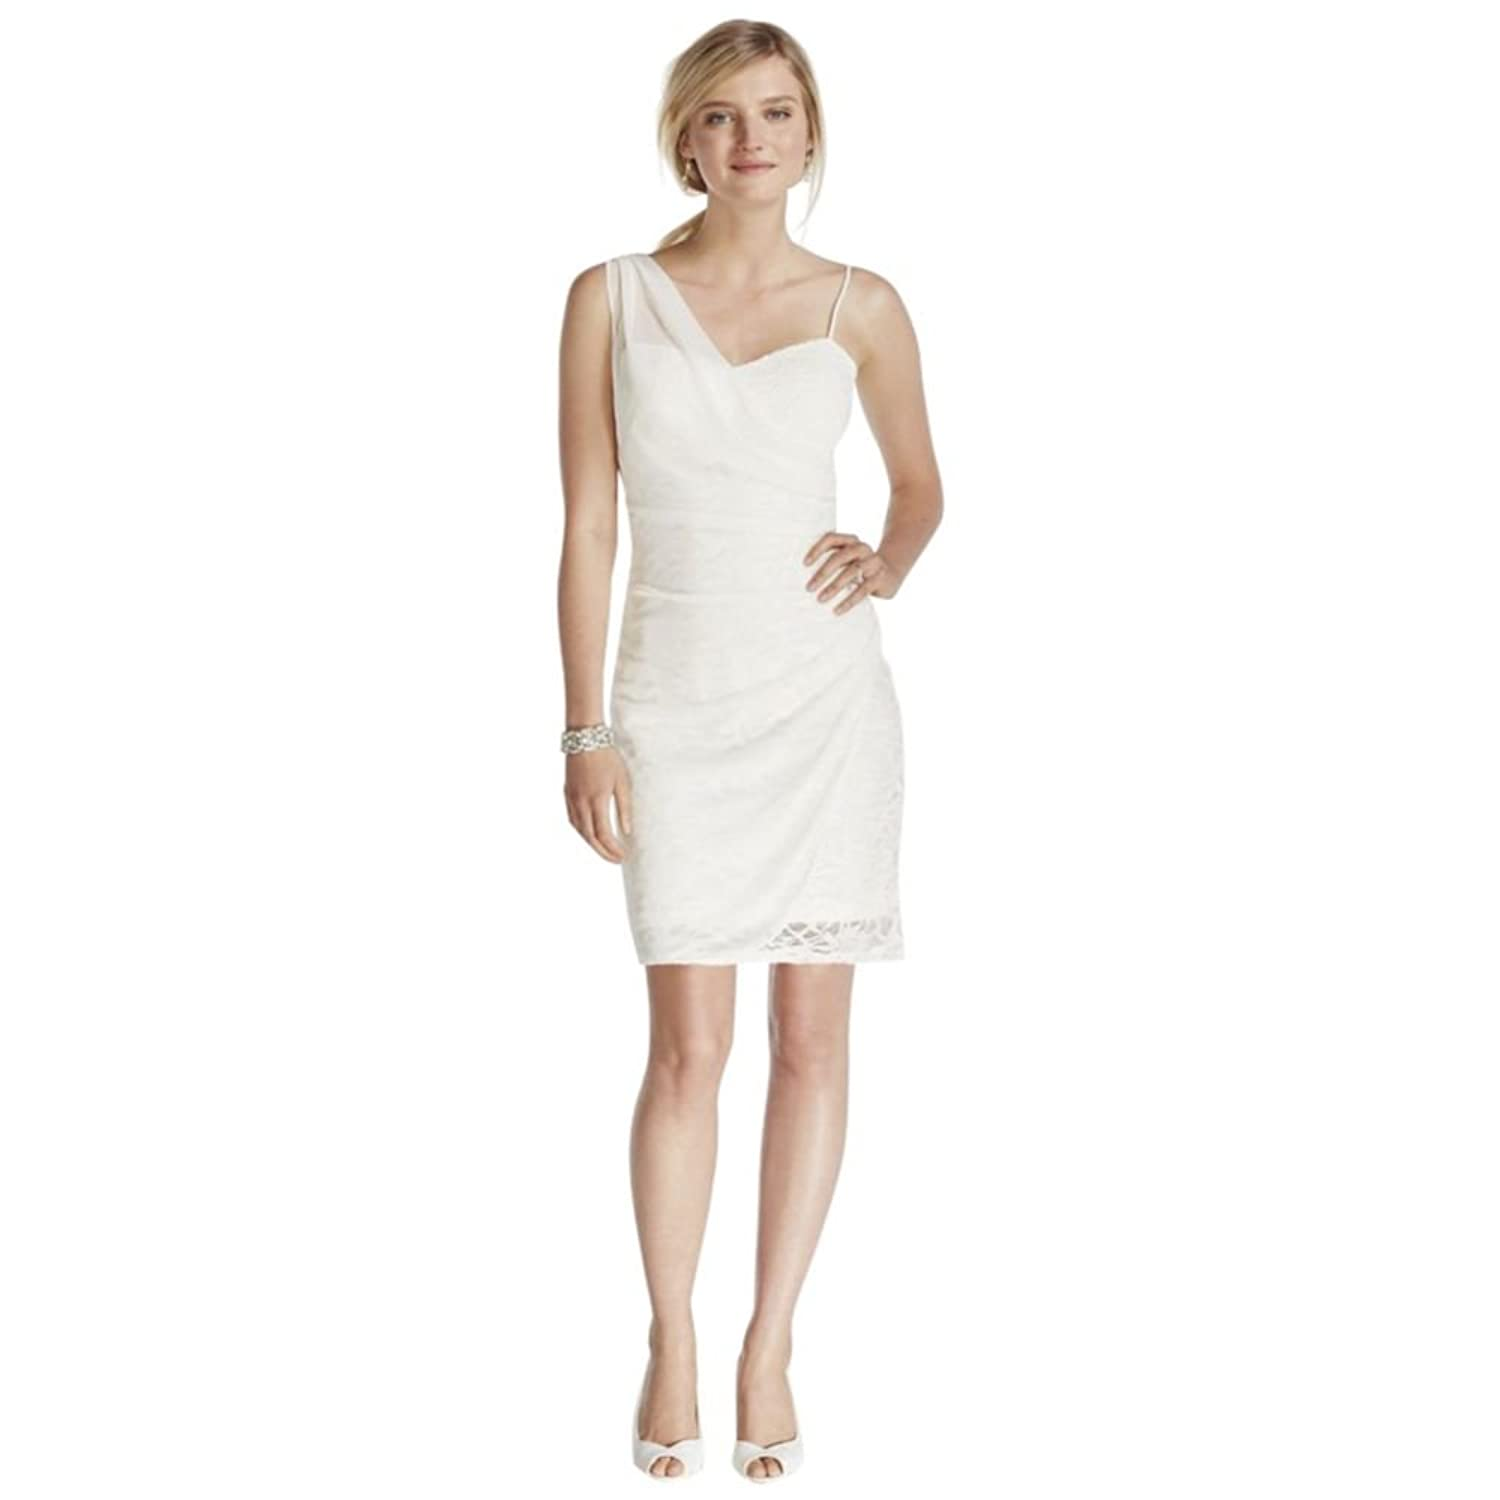 Davids Bridal Short Lace Dress With Sheer Mesh Overlay Style 46611